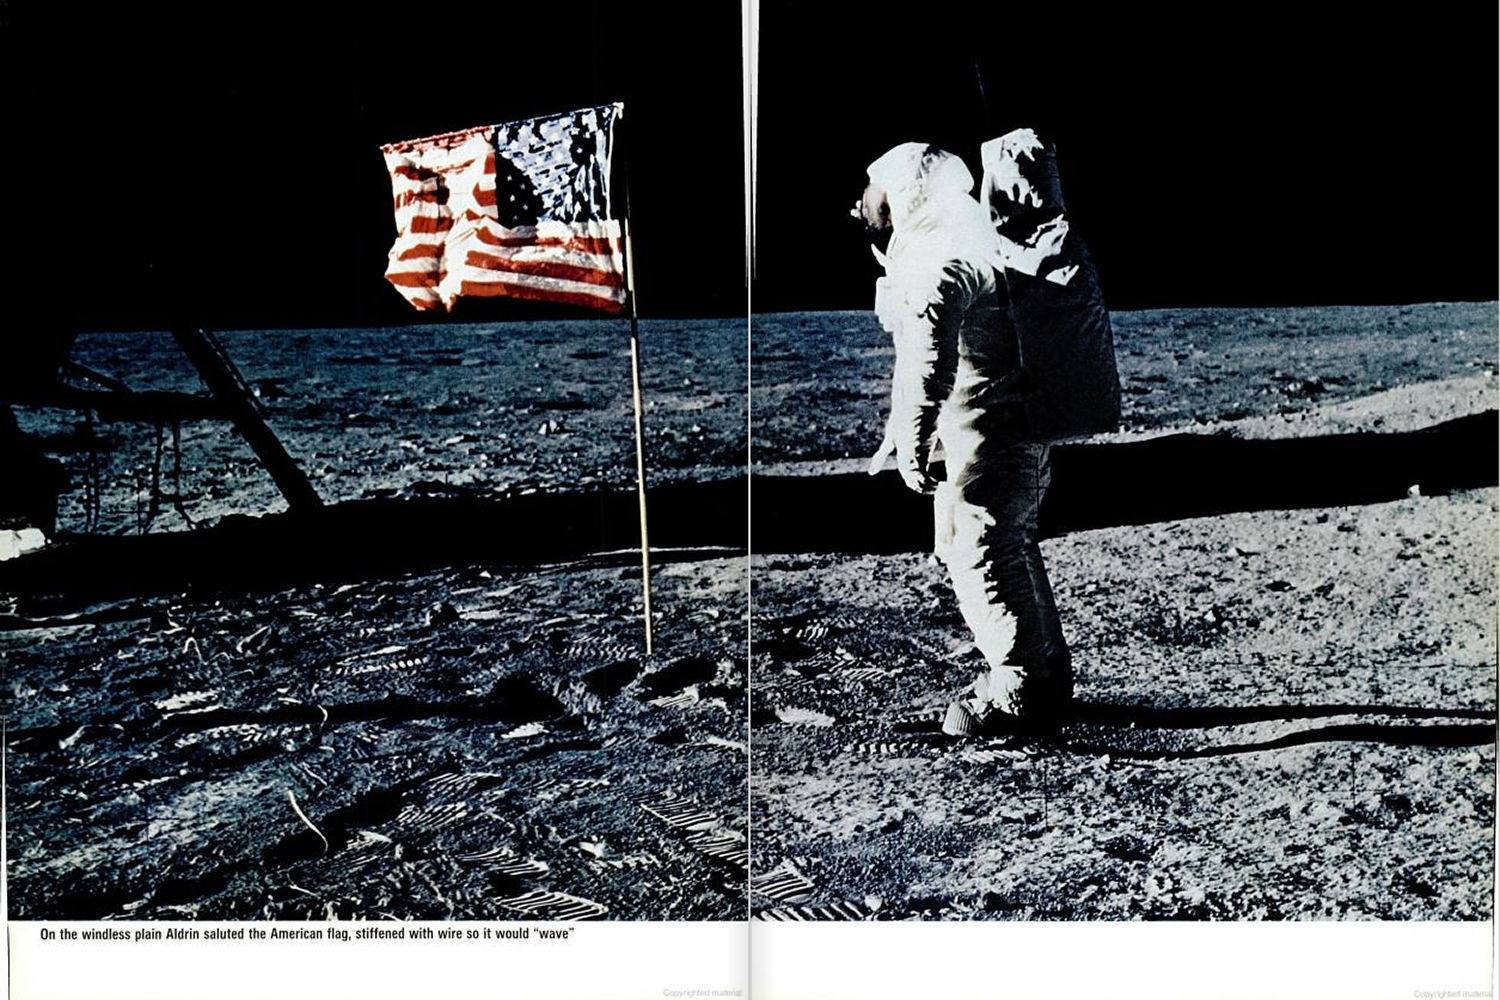 "<b>LIFE magazine Special Edition, August 11, 1969.</b> ""On the windless plain Aldrin saluted the American flag, stiffened with wire so that it would 'wave'. . . ."""